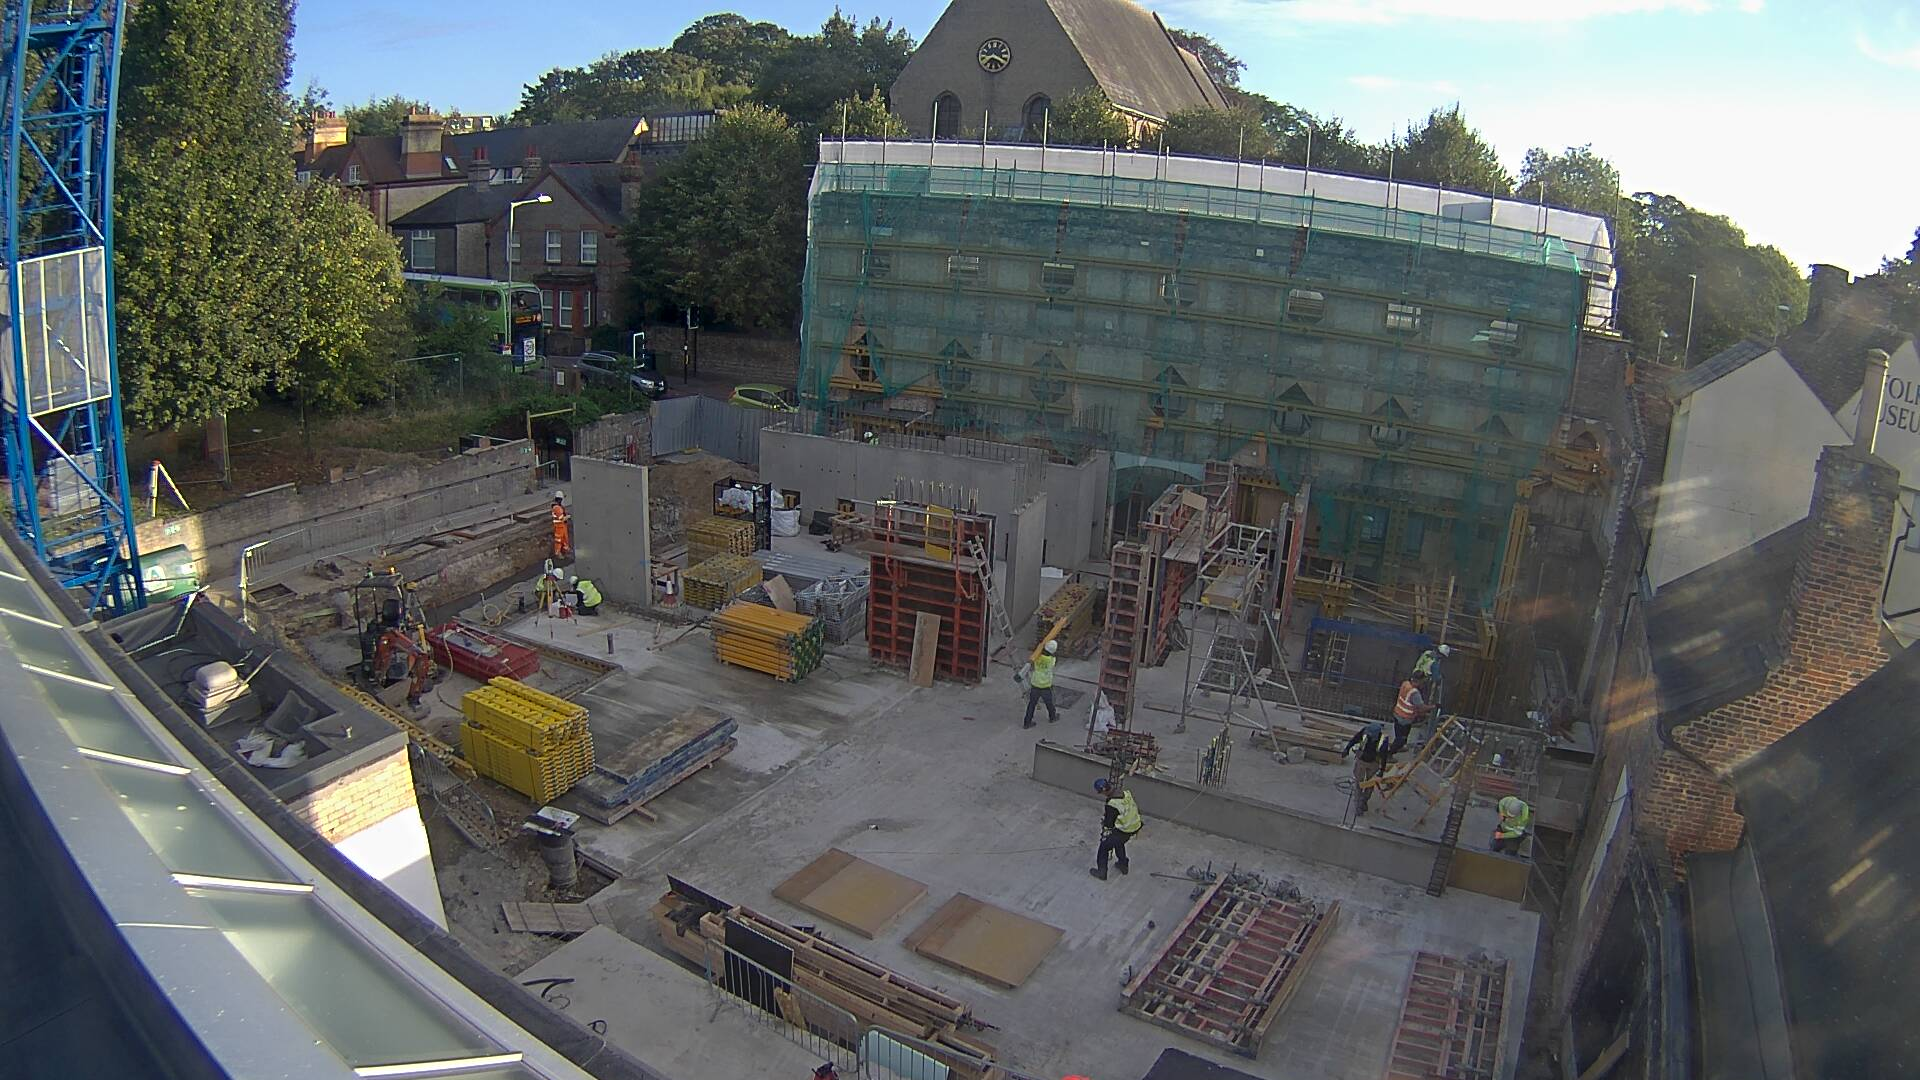 View from the crane on Kettle's Yard building site